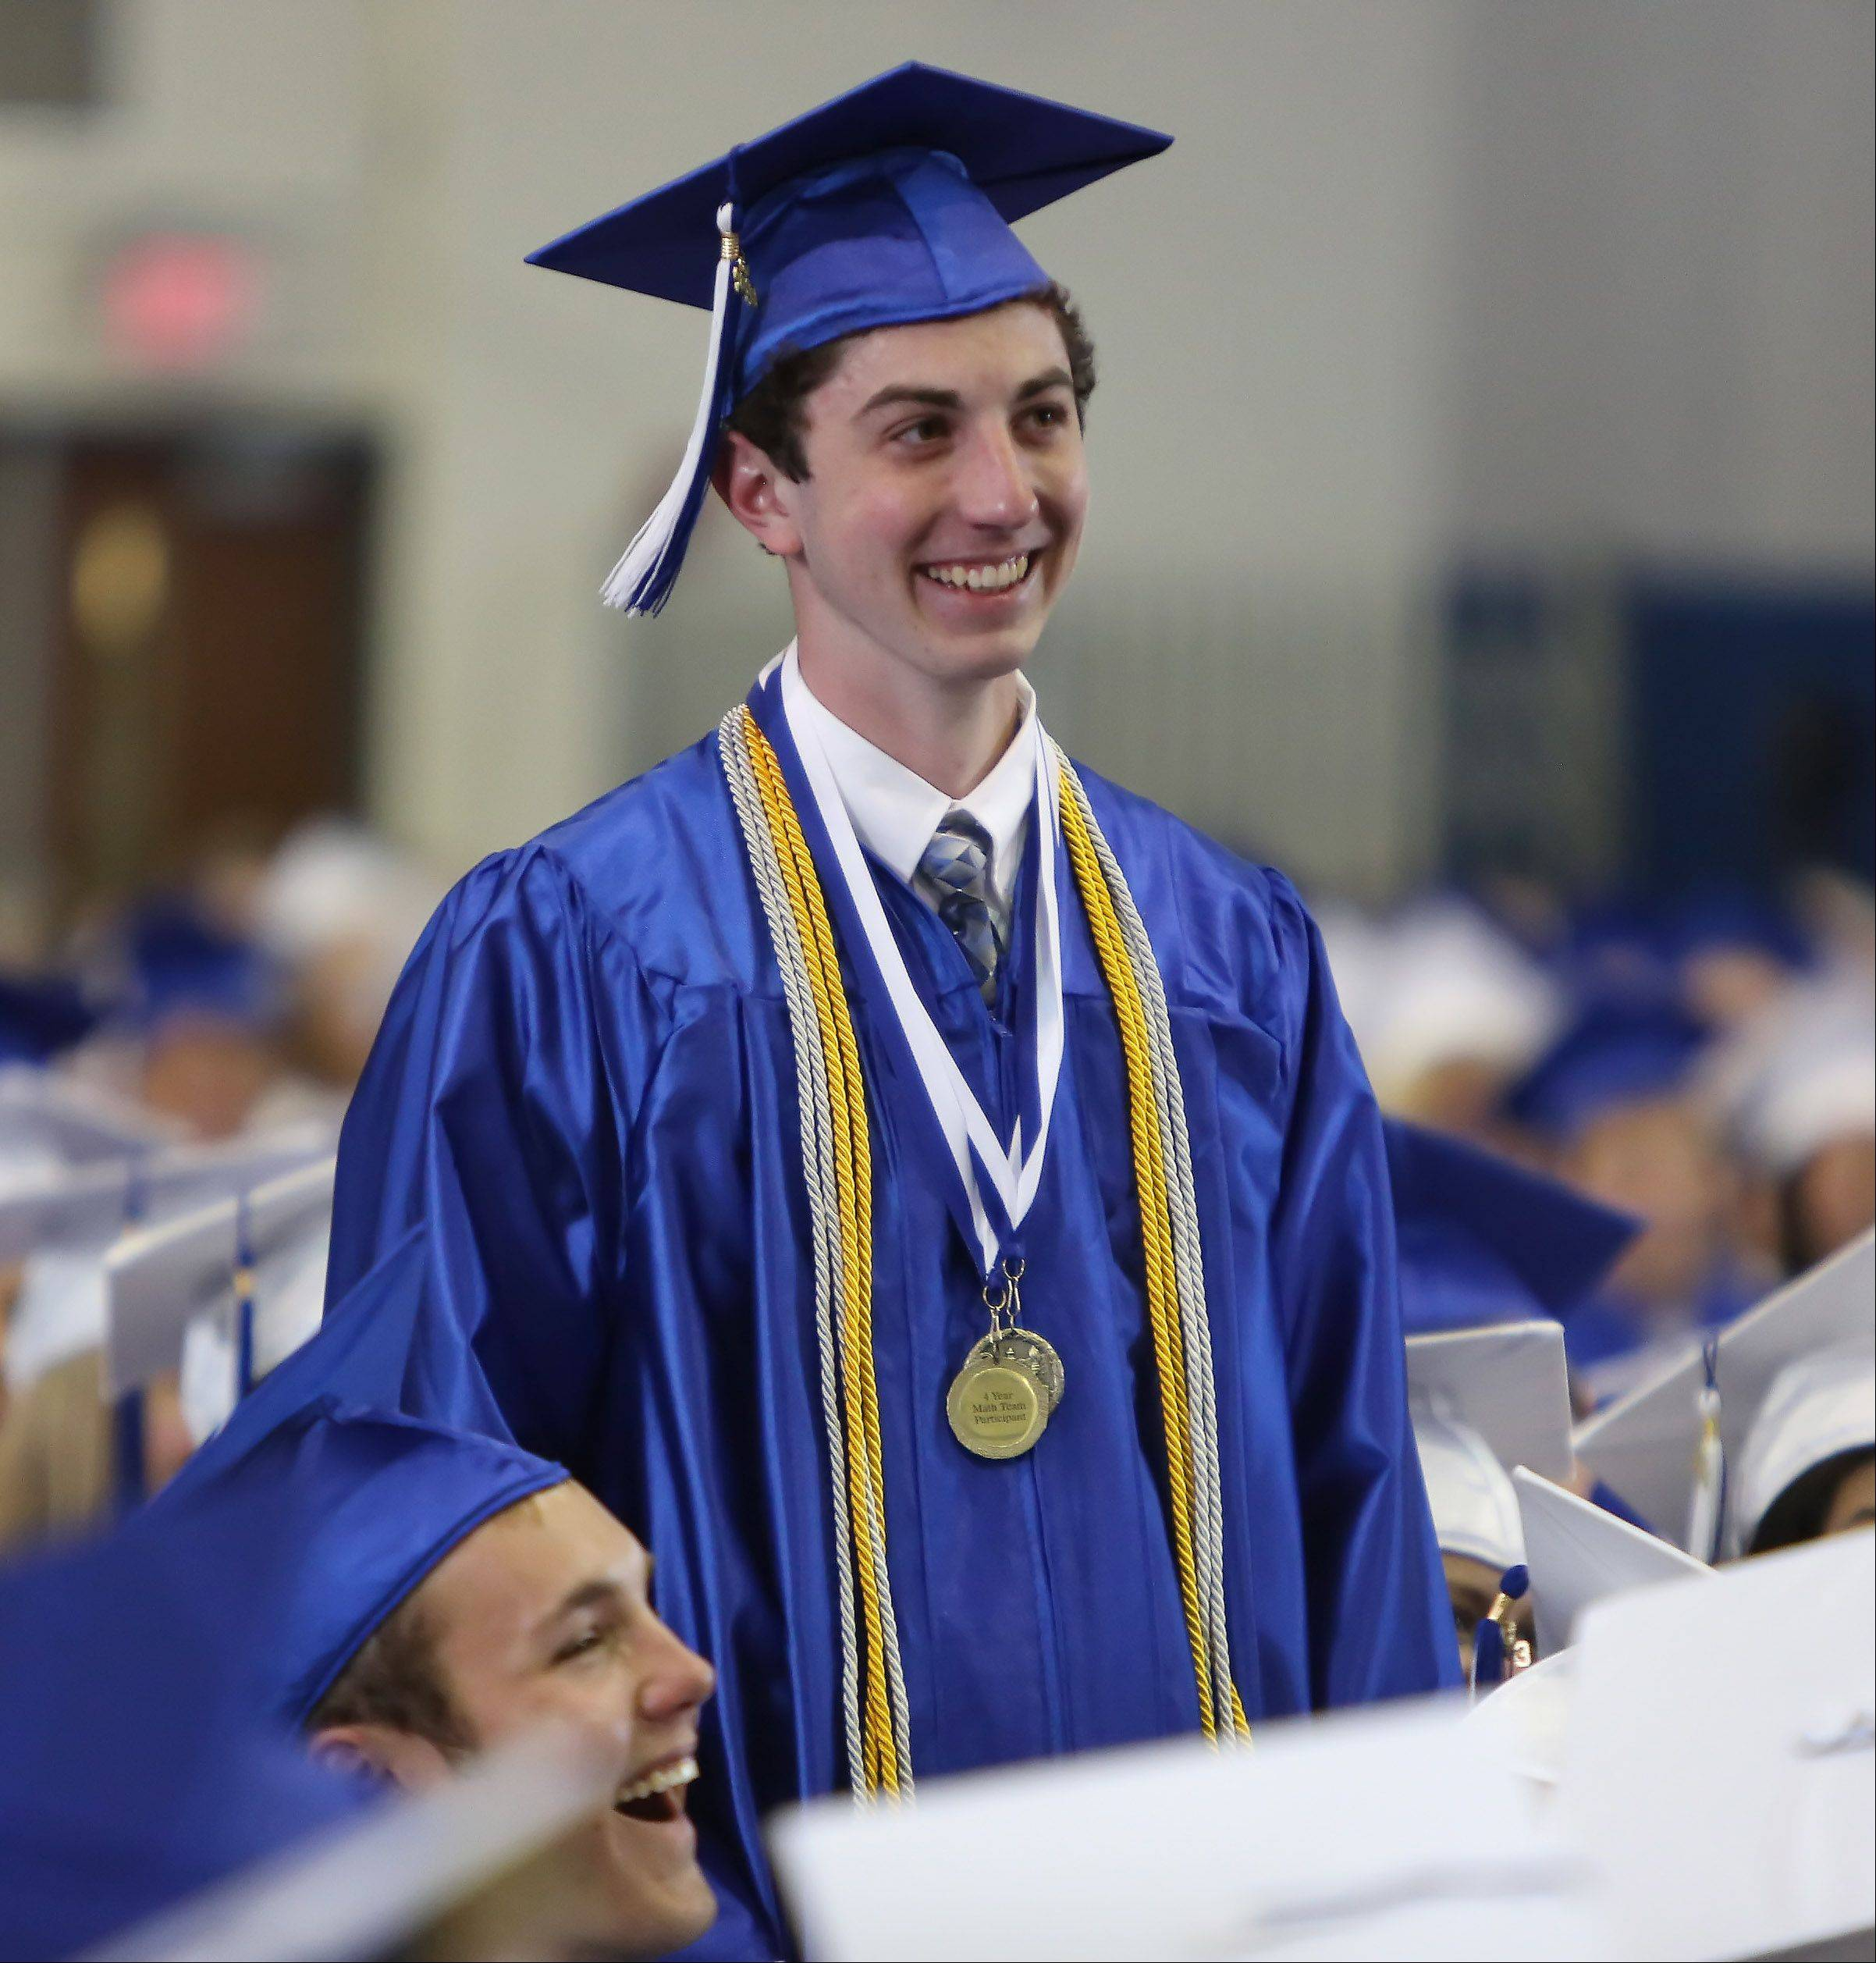 Mark Noll is asked to stand by faculty speaker Chris Bennett during the Lake Zurich High School graduation ceremony on Sunday. Noll was recognized as the only senior at the school who is a National Merit Scholar and the only one who raises chickens.